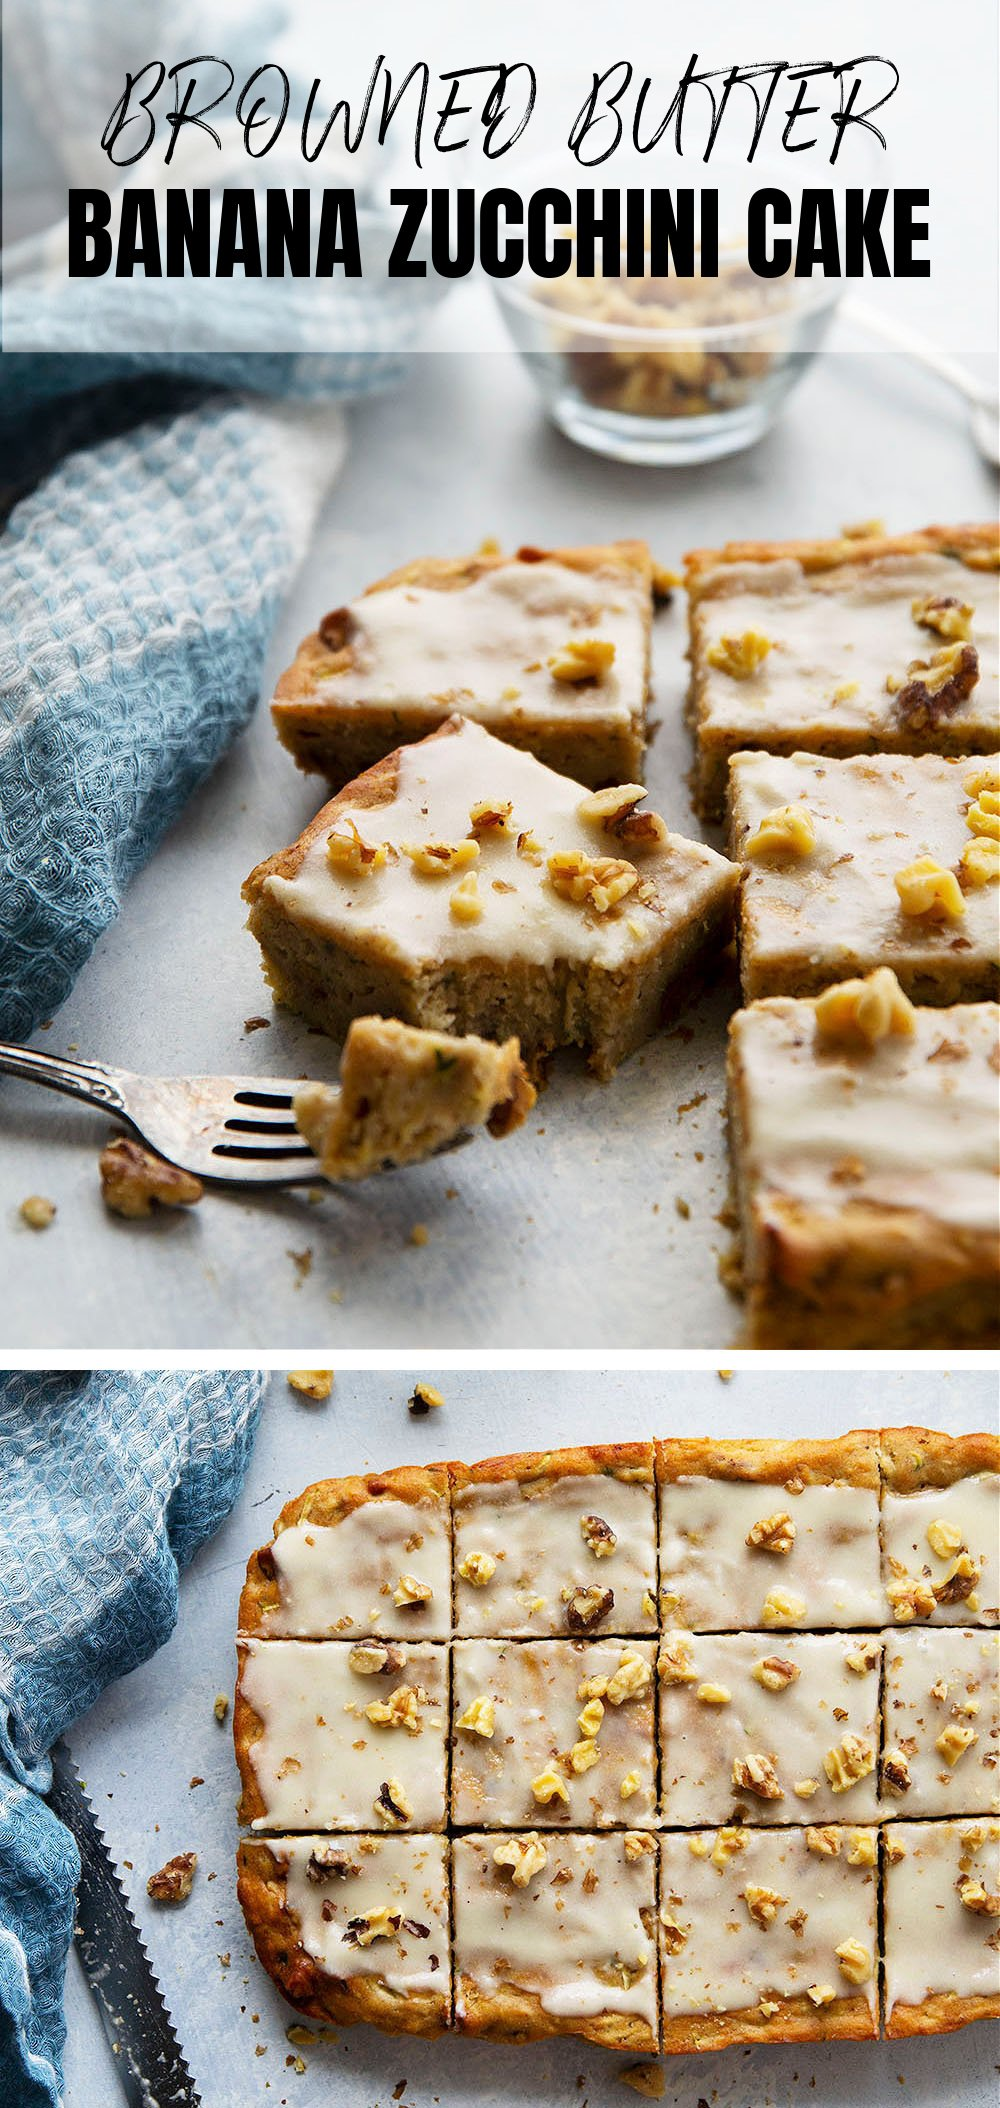 This banana zucchini cake is incredibly soft and loaded with flavorful browned butter and crunchy walnuts. - a perfect breakfast, dessert, or snack cake!